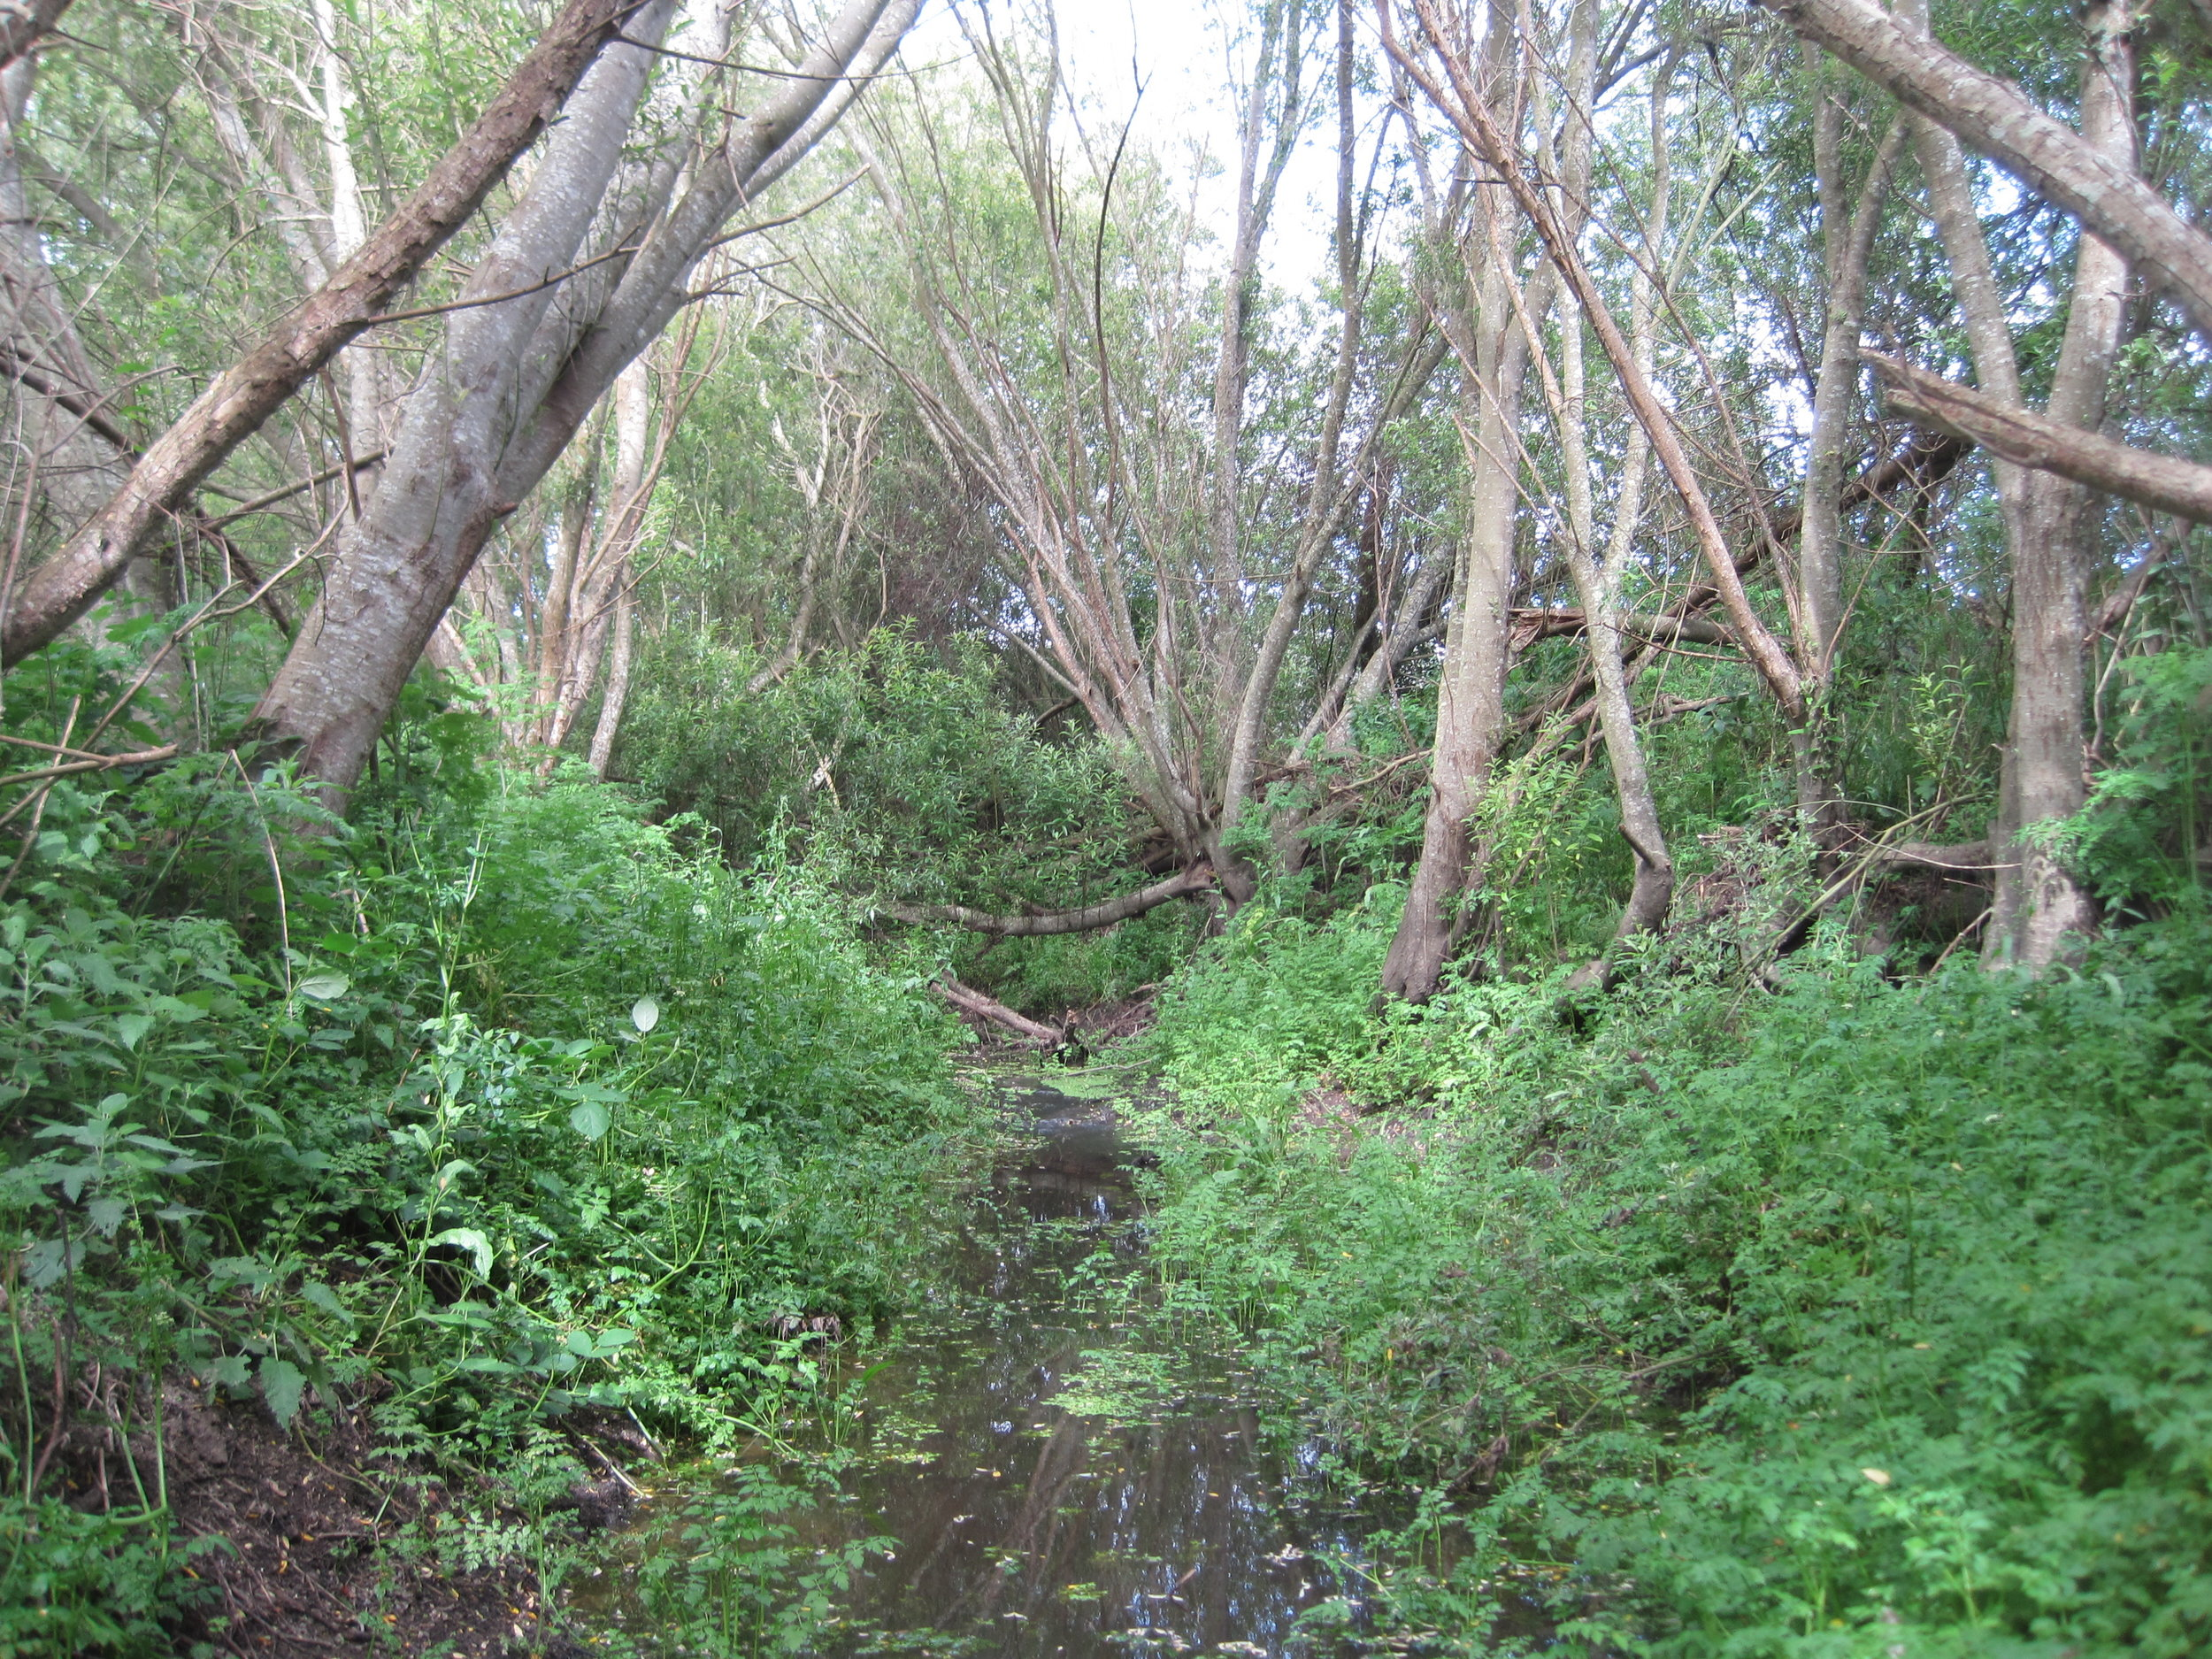 Longer stretches of tress, such as the established stream side trees shown here, can protect the streams.